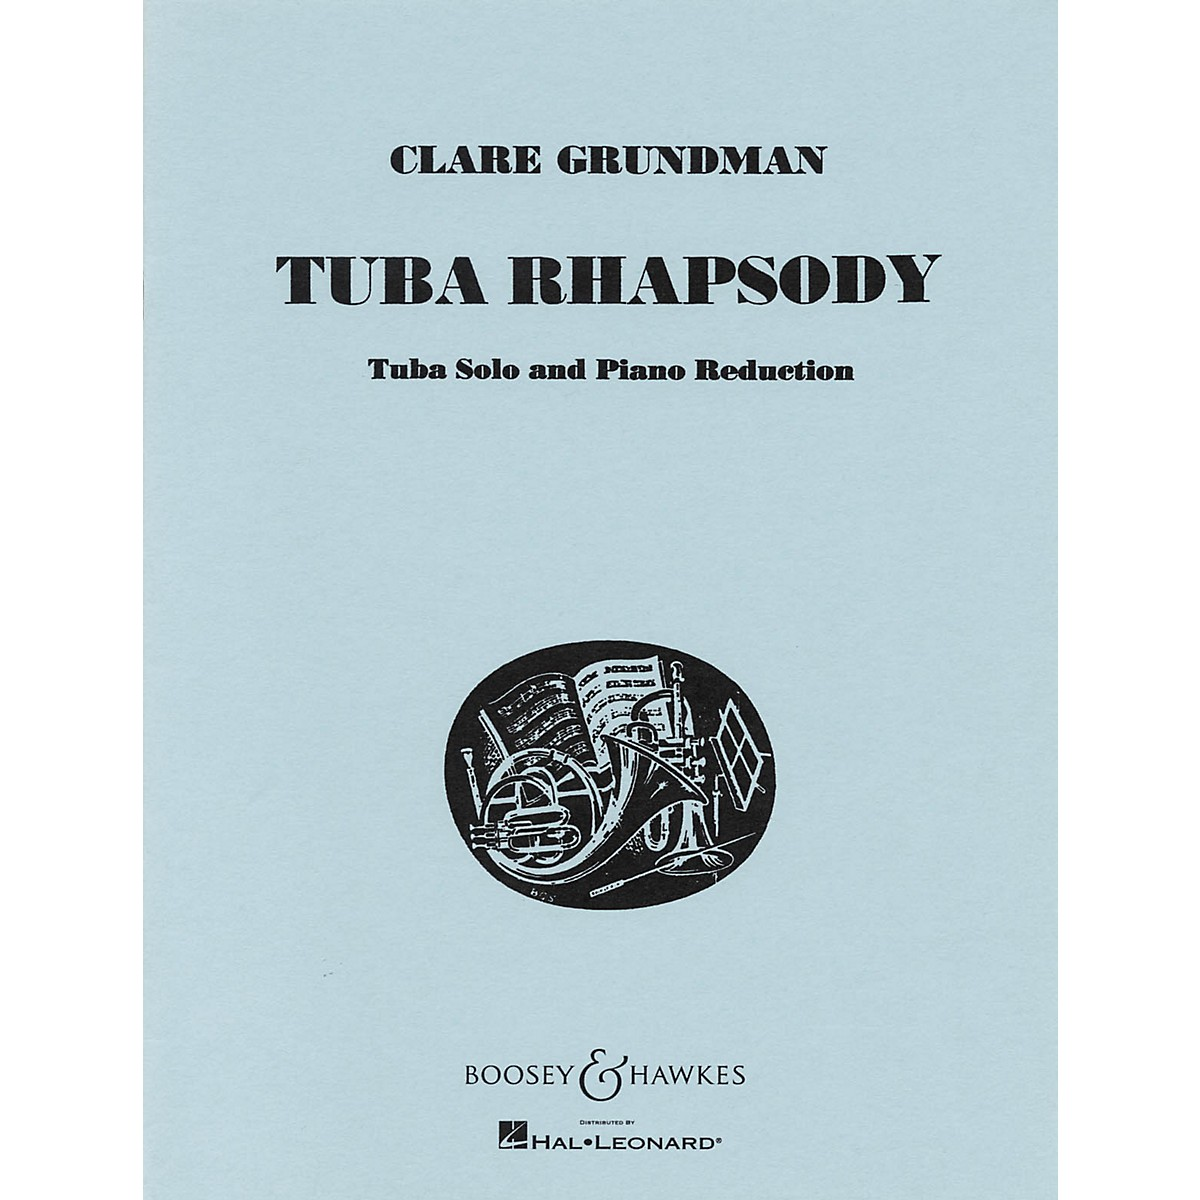 Boosey and Hawkes Tuba Rhapsody (for Tuba and Piano Reduction) Boosey & Hawkes Chamber Music Series by Clare Grundman